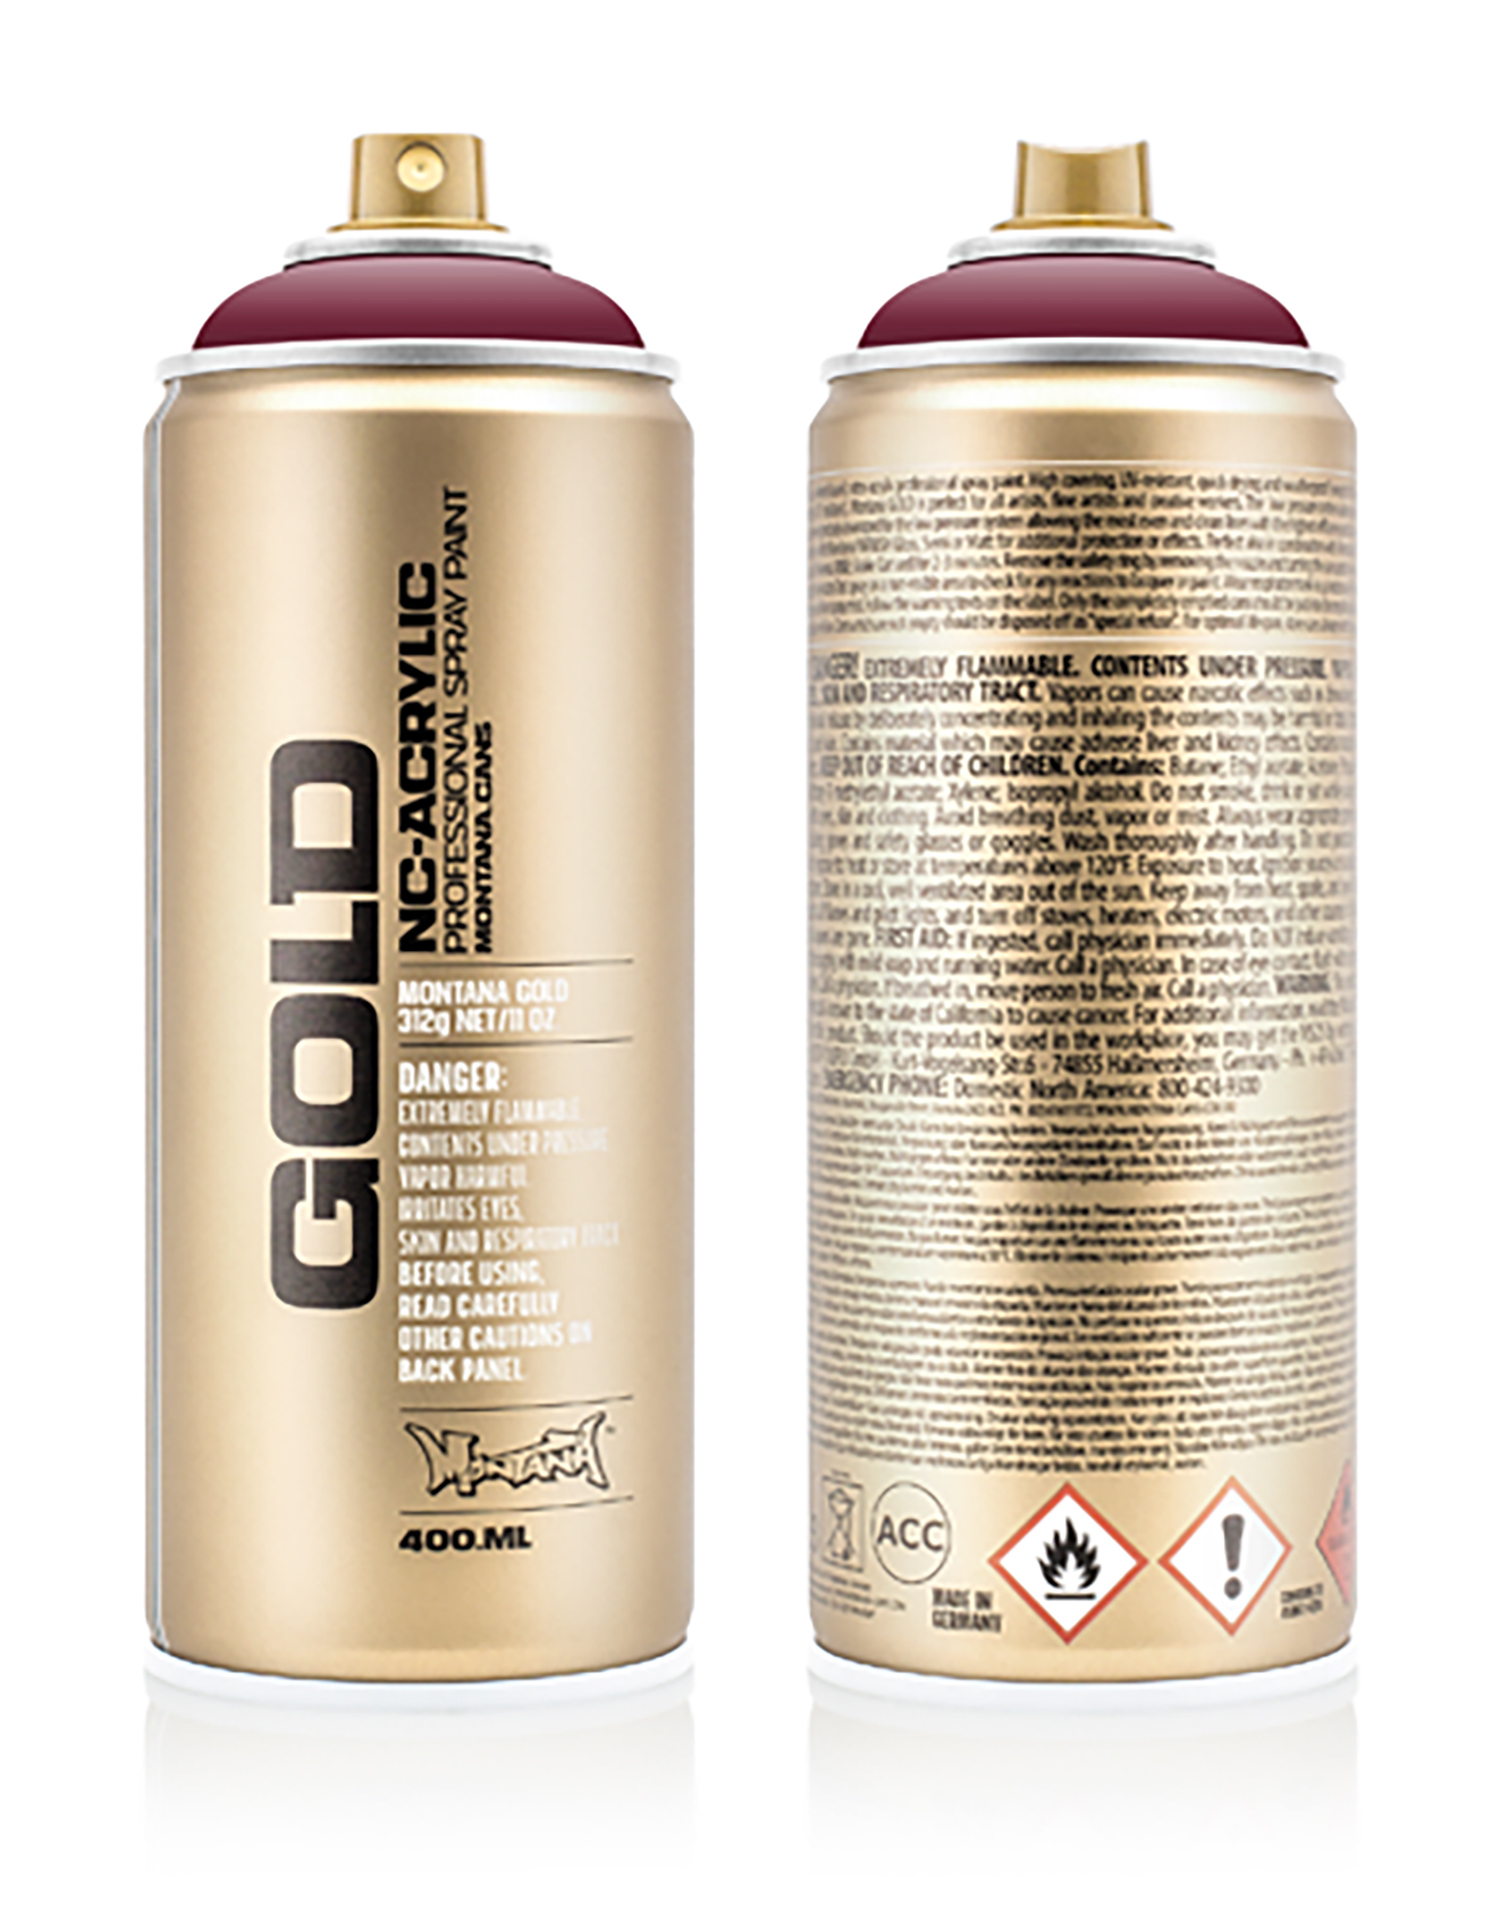 MONTANA-GOLD-SPRAY-400ML-G-4040